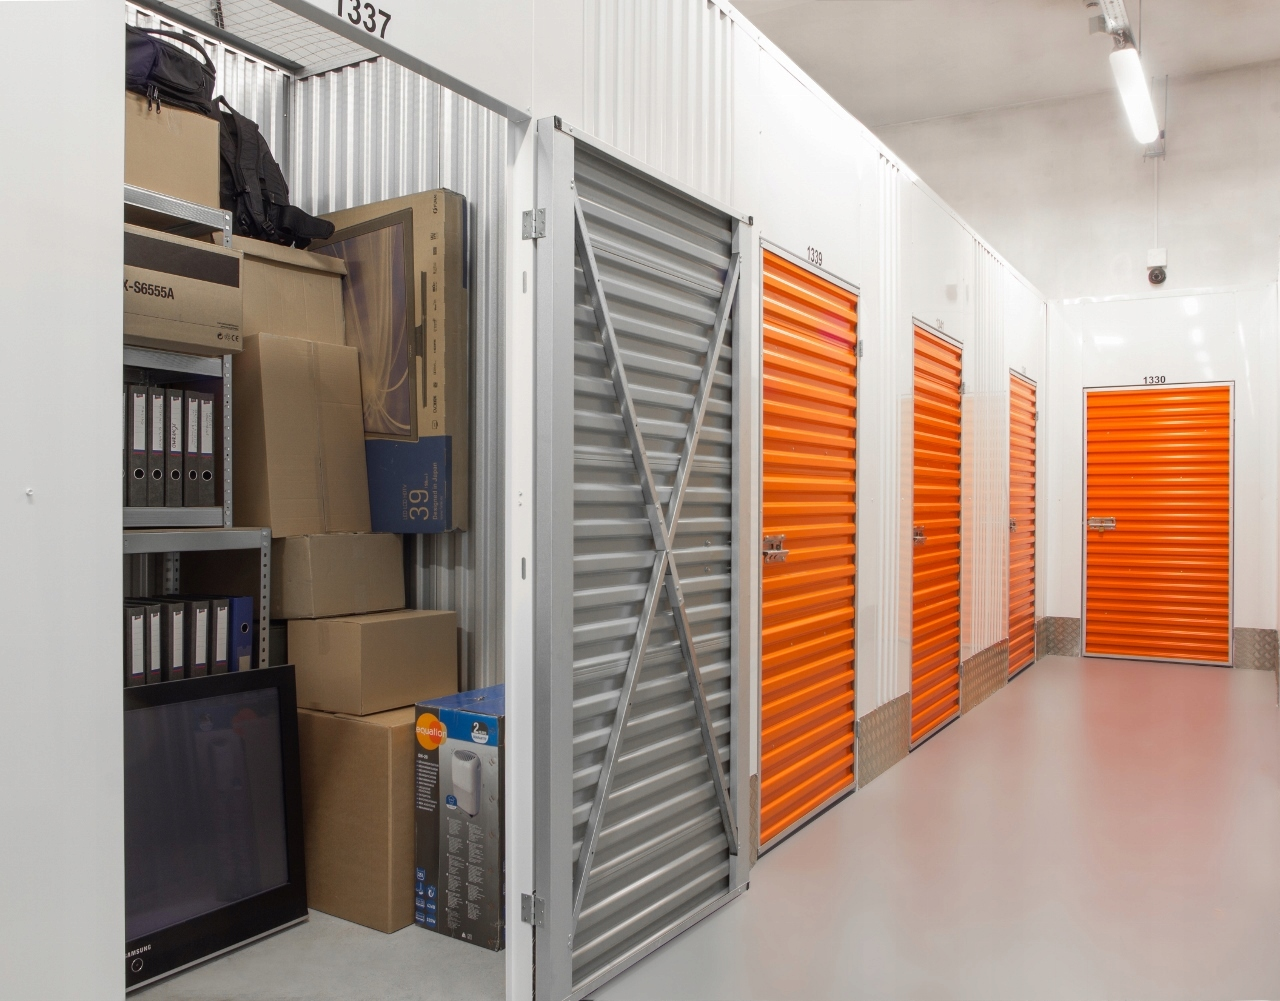 Item Warehouse for rent in Wroclaw, Boleslaw 58